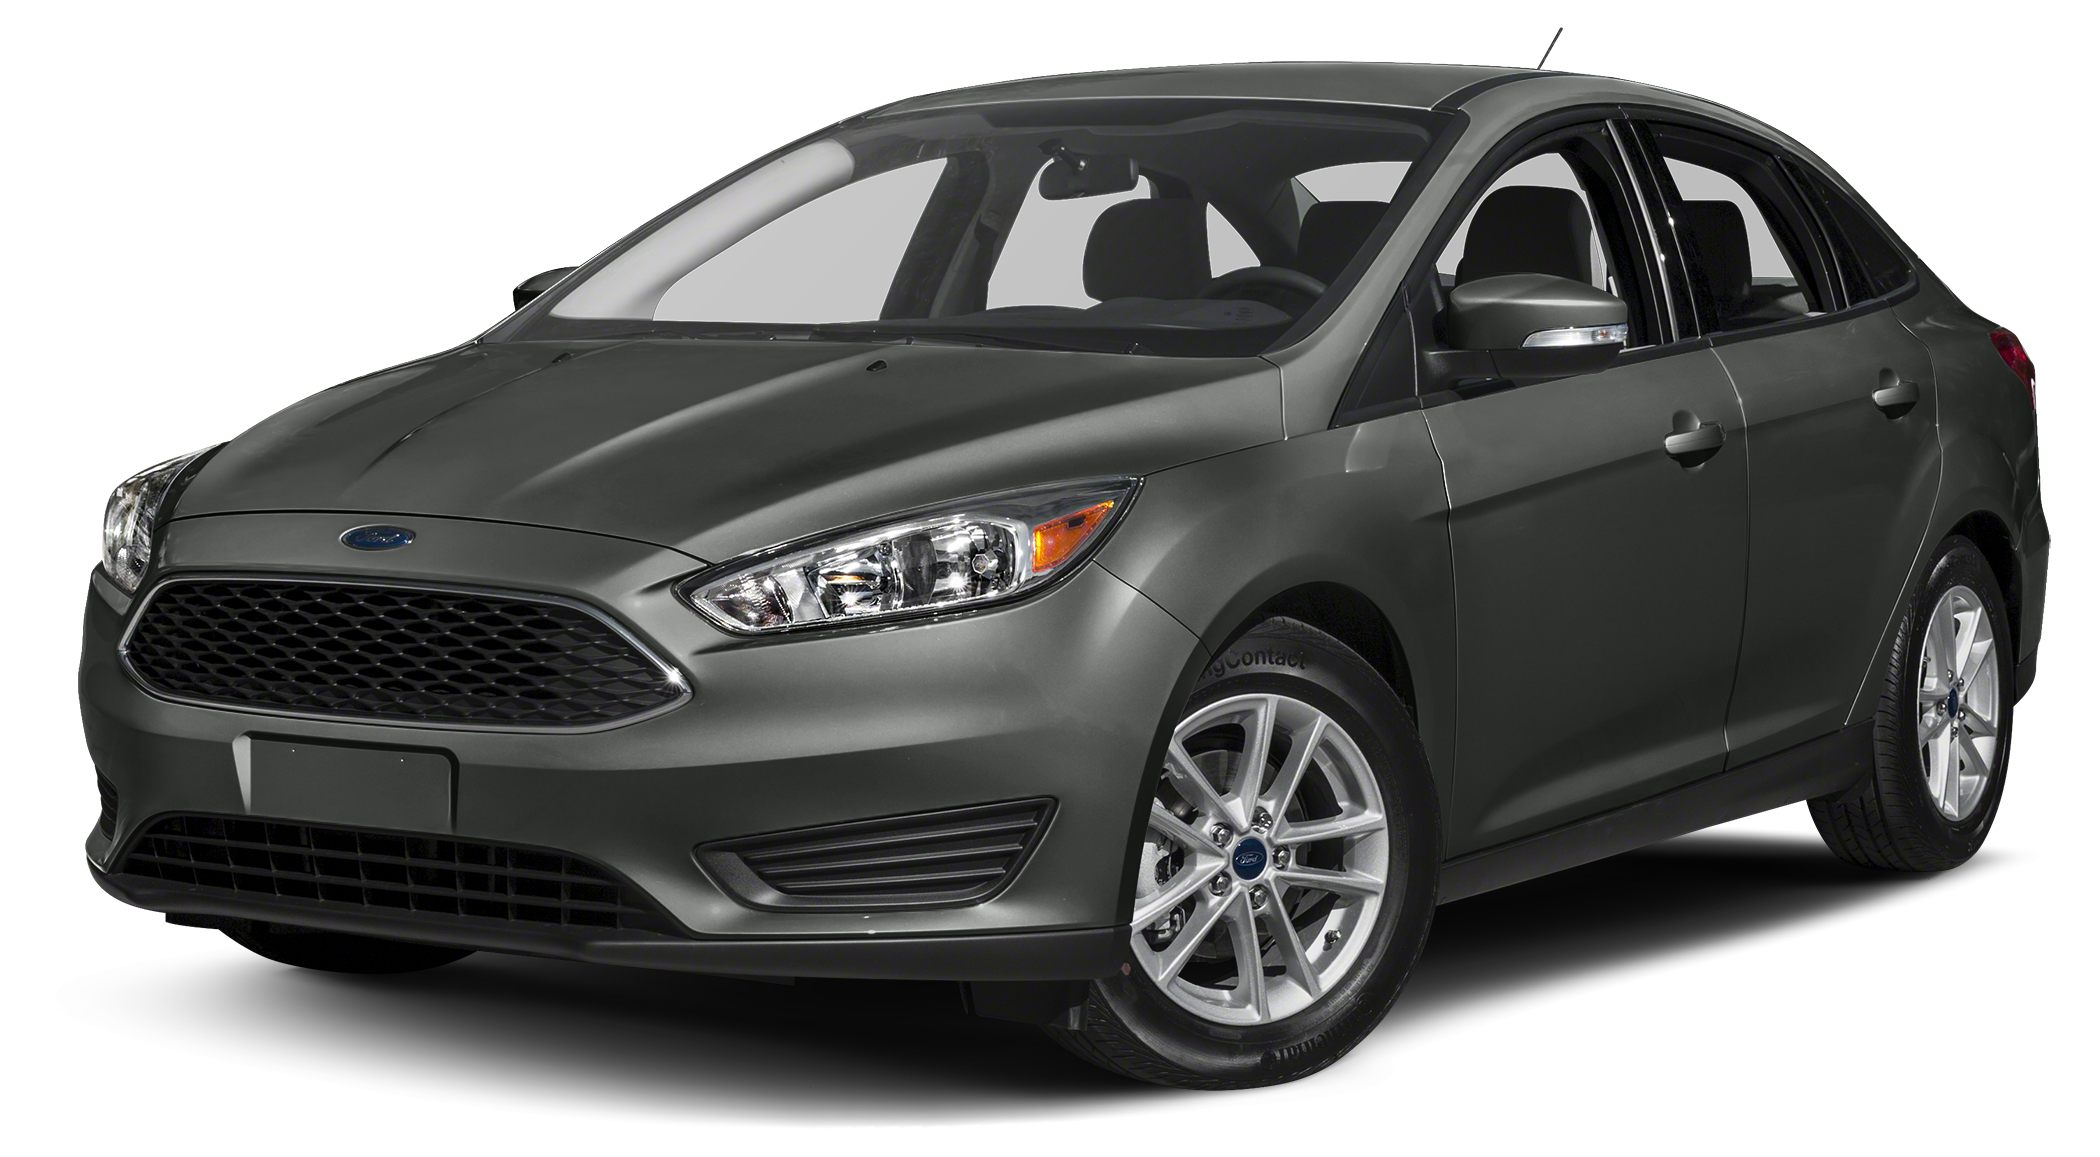 2018 Ford Focus SE Price includes 2500 - Retail Customer Cash Exp 01022018 2500 off MSRP